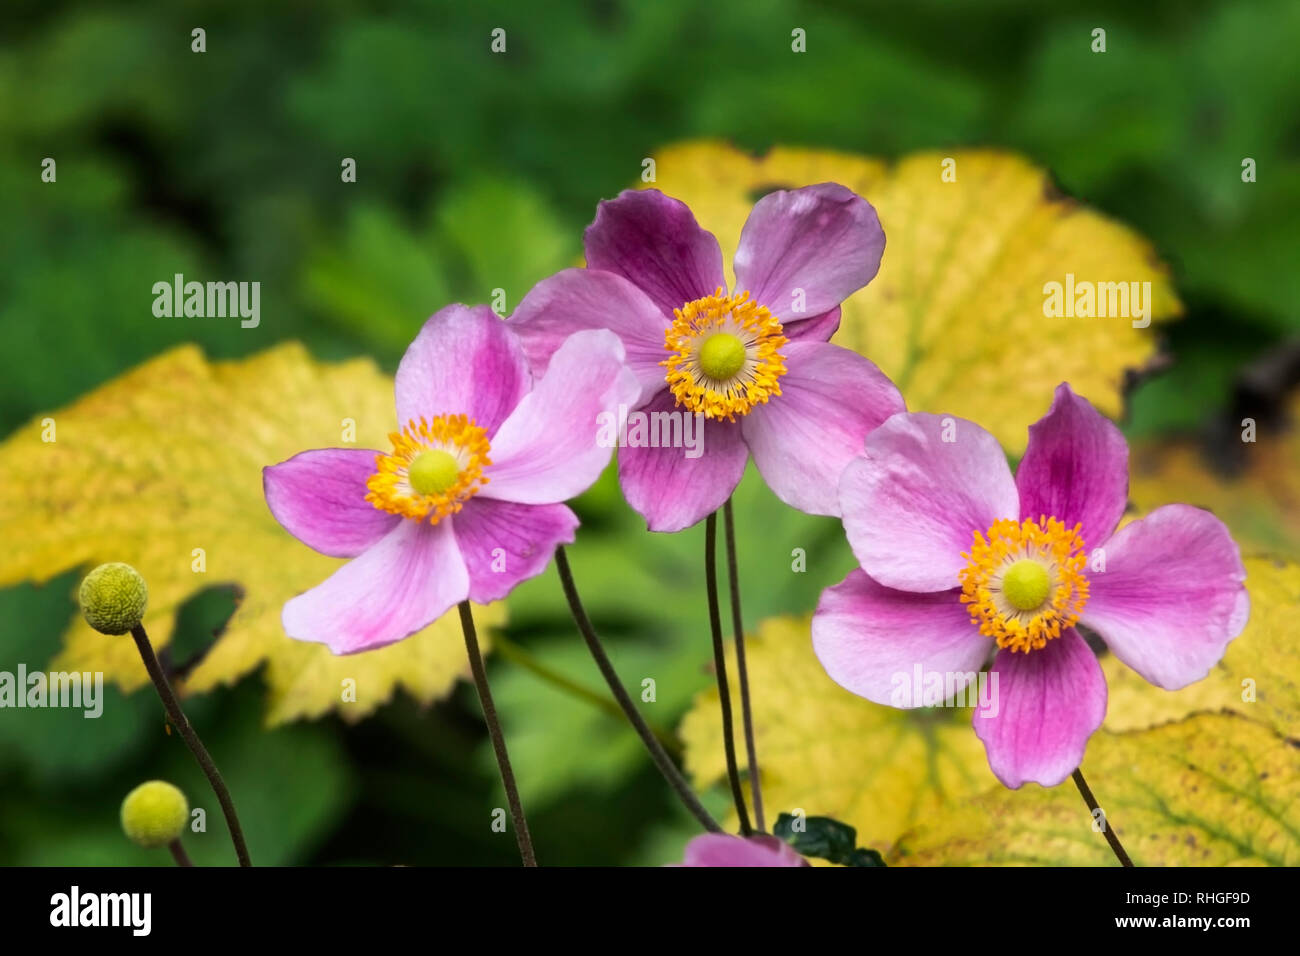 Pink and yellow 'Little Princess' anemone flowers growing in a row in a garden - Stock Image